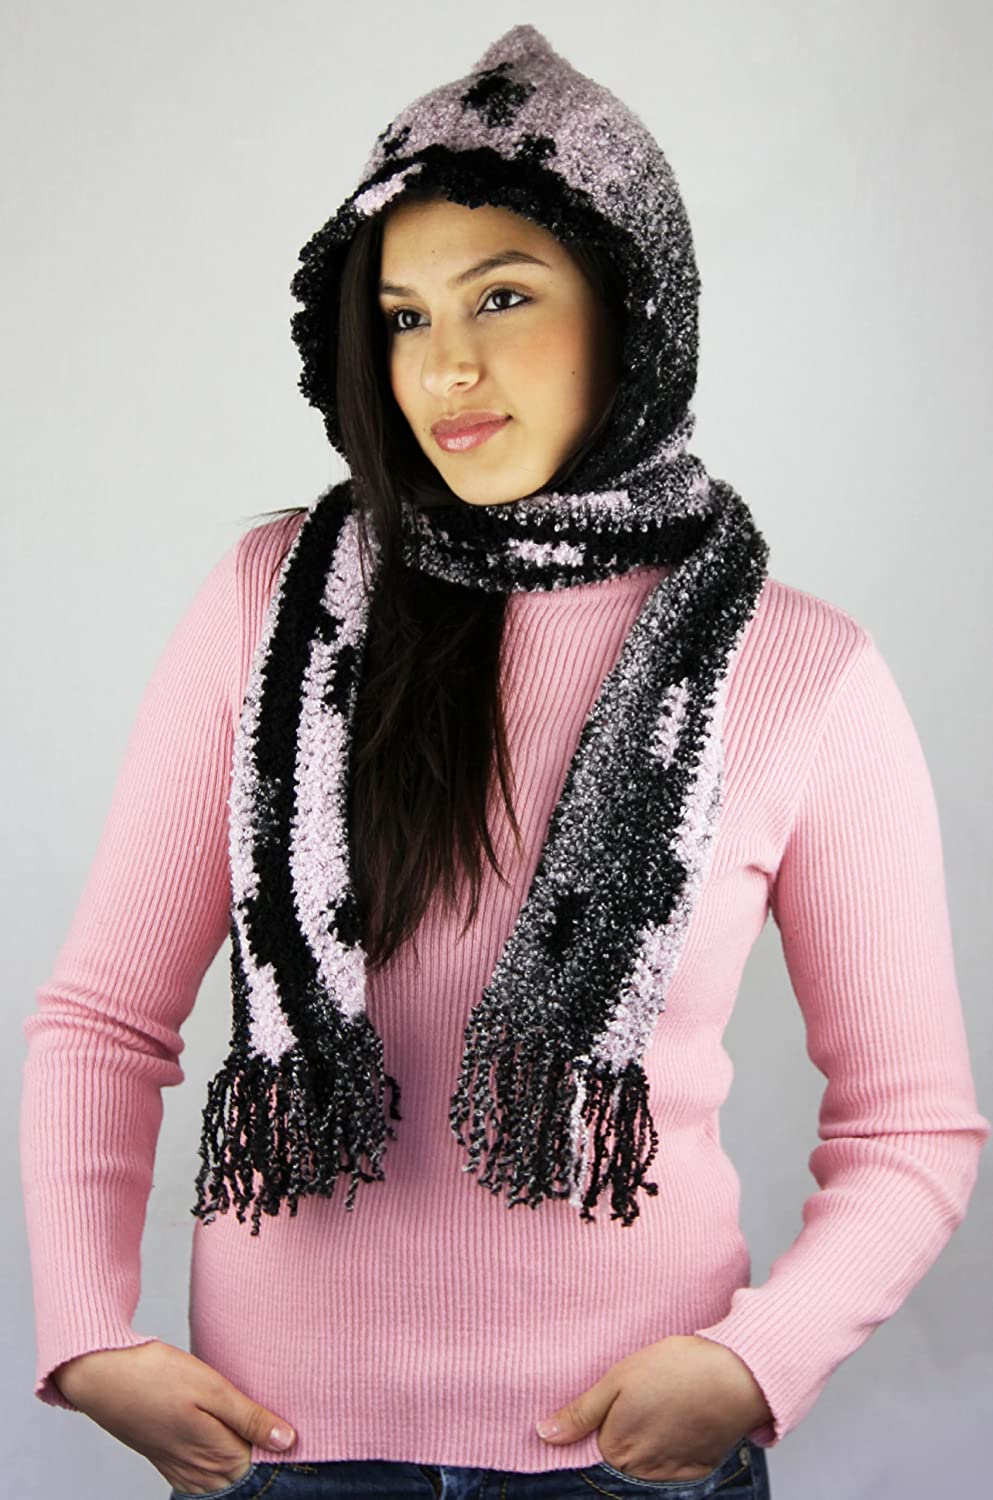 Handmade Soft Acrylic Vintage Pink and Black Scarf and Hat (Crocheted By Hand)